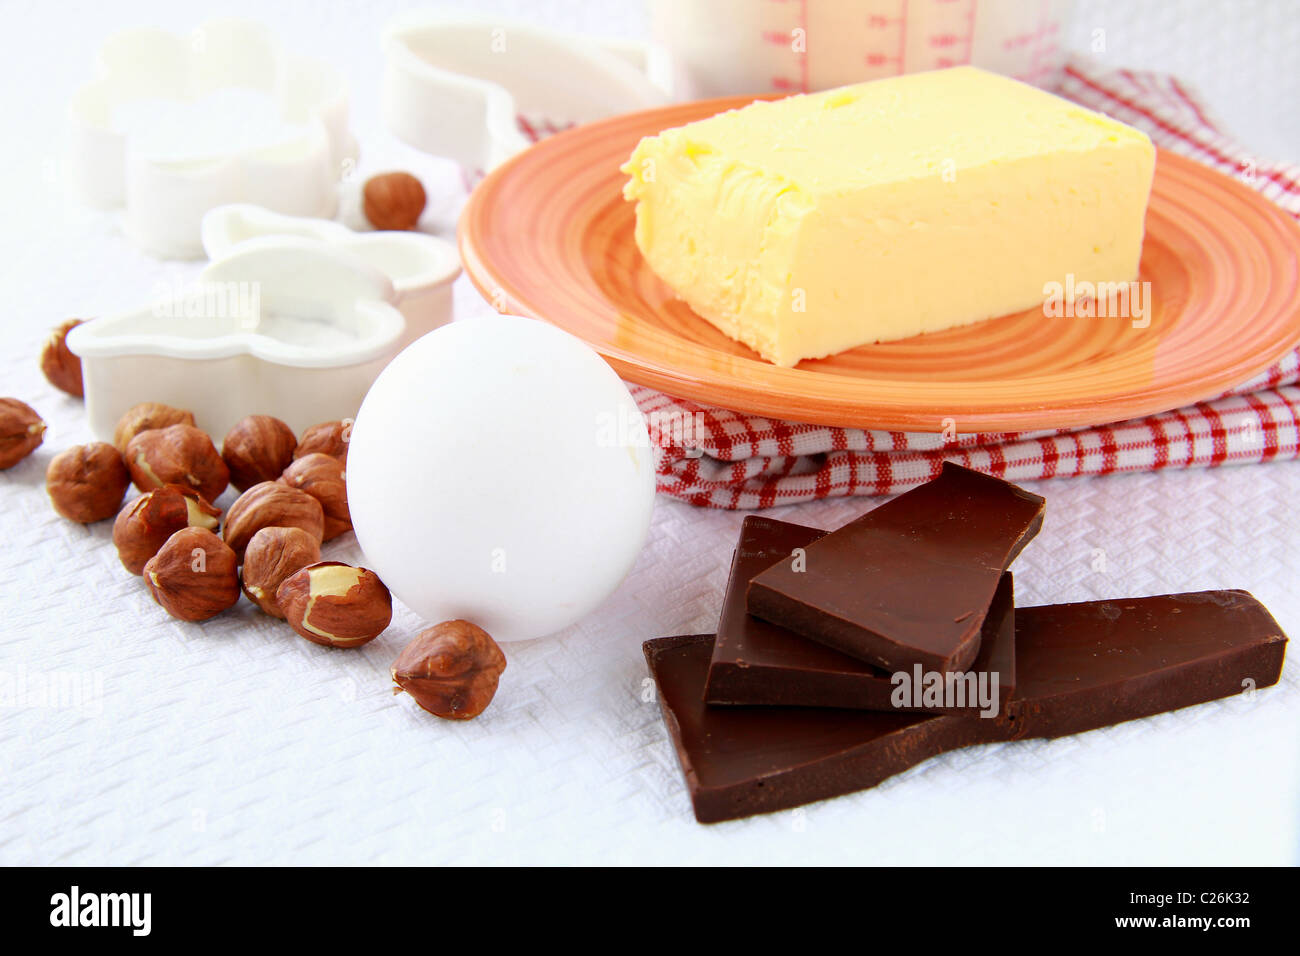 Basic baking ingredients, flour, eggs and  butter - Stock Image